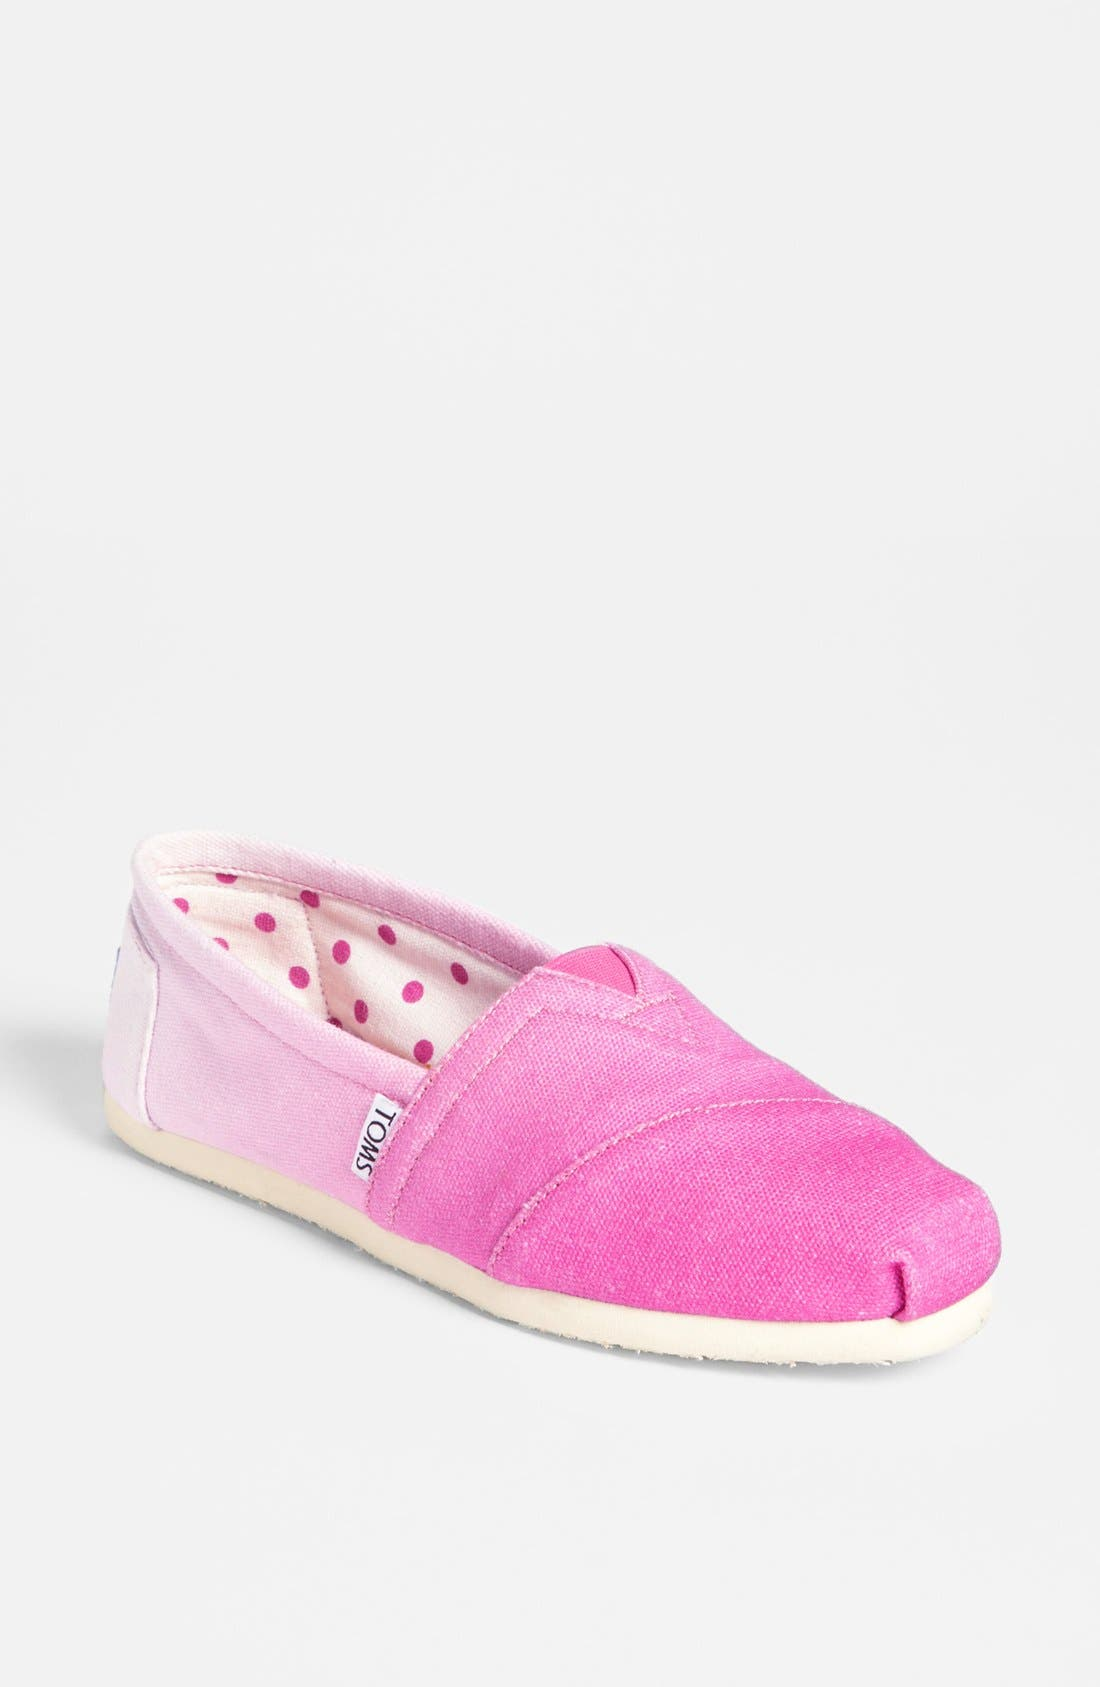 Alternate Image 1 Selected - TOMS 'Classic - Pink Ombré' Slip-On (Women) (Exclusive Color)